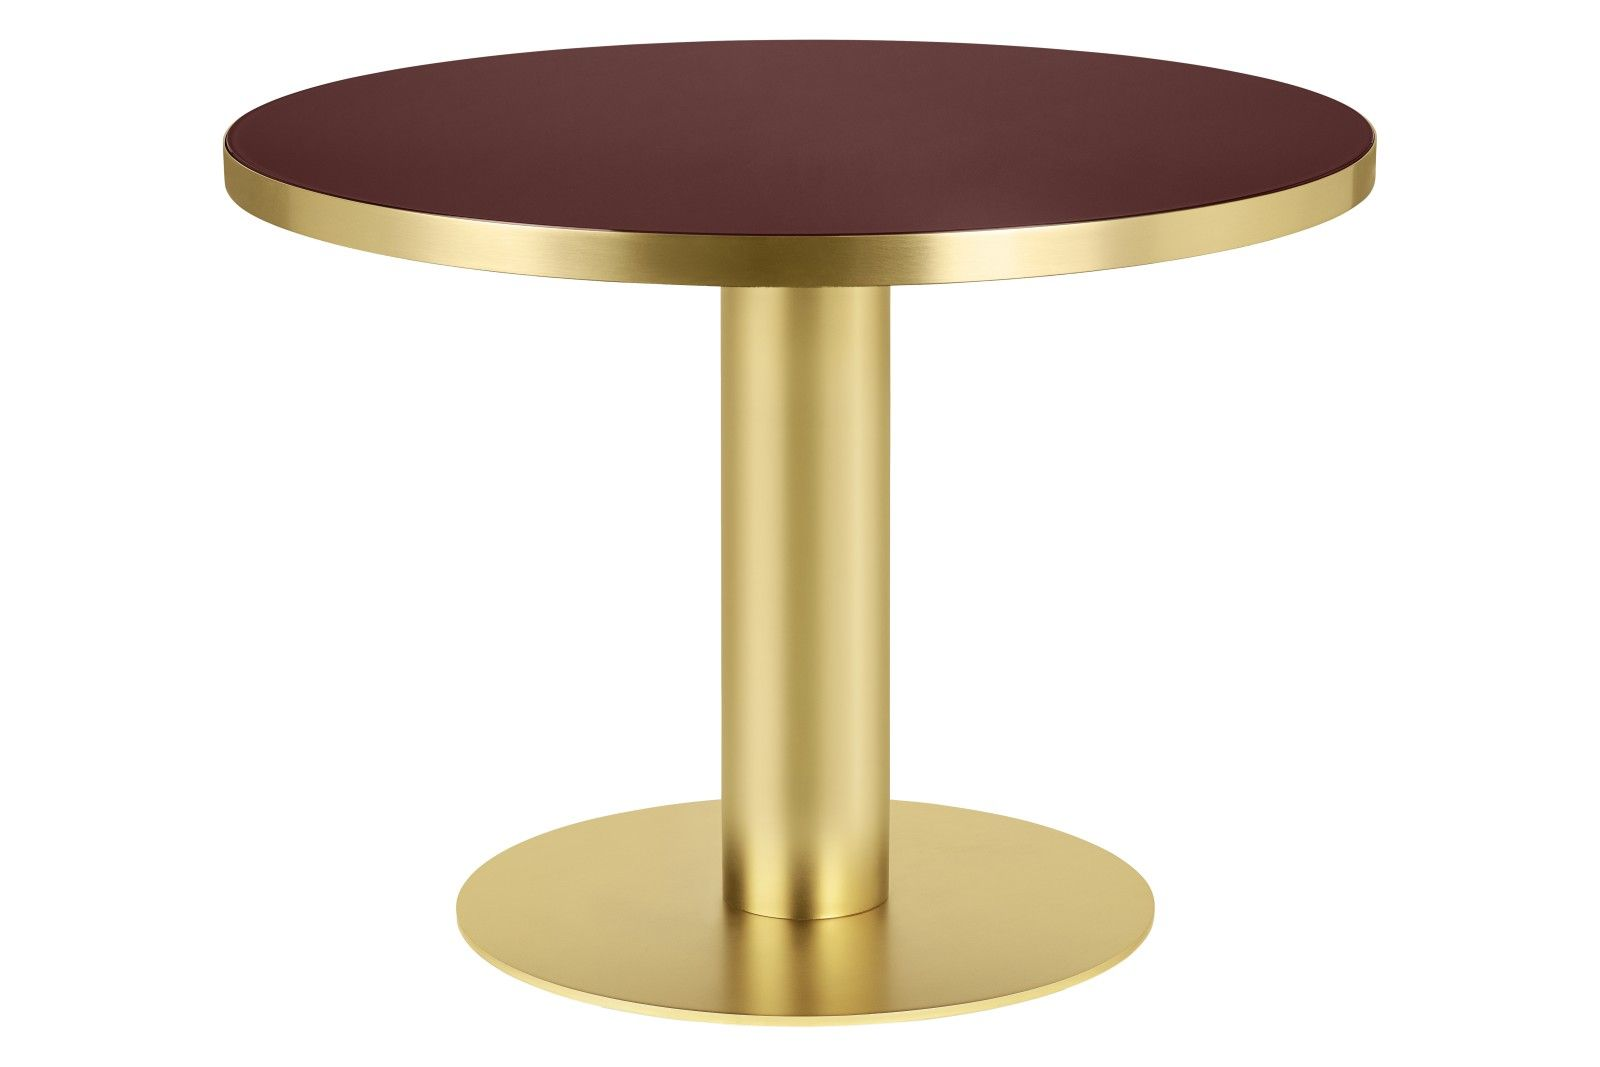 Gubi 2 0 Round Dining Table Glass From Gubi Round Dining Table